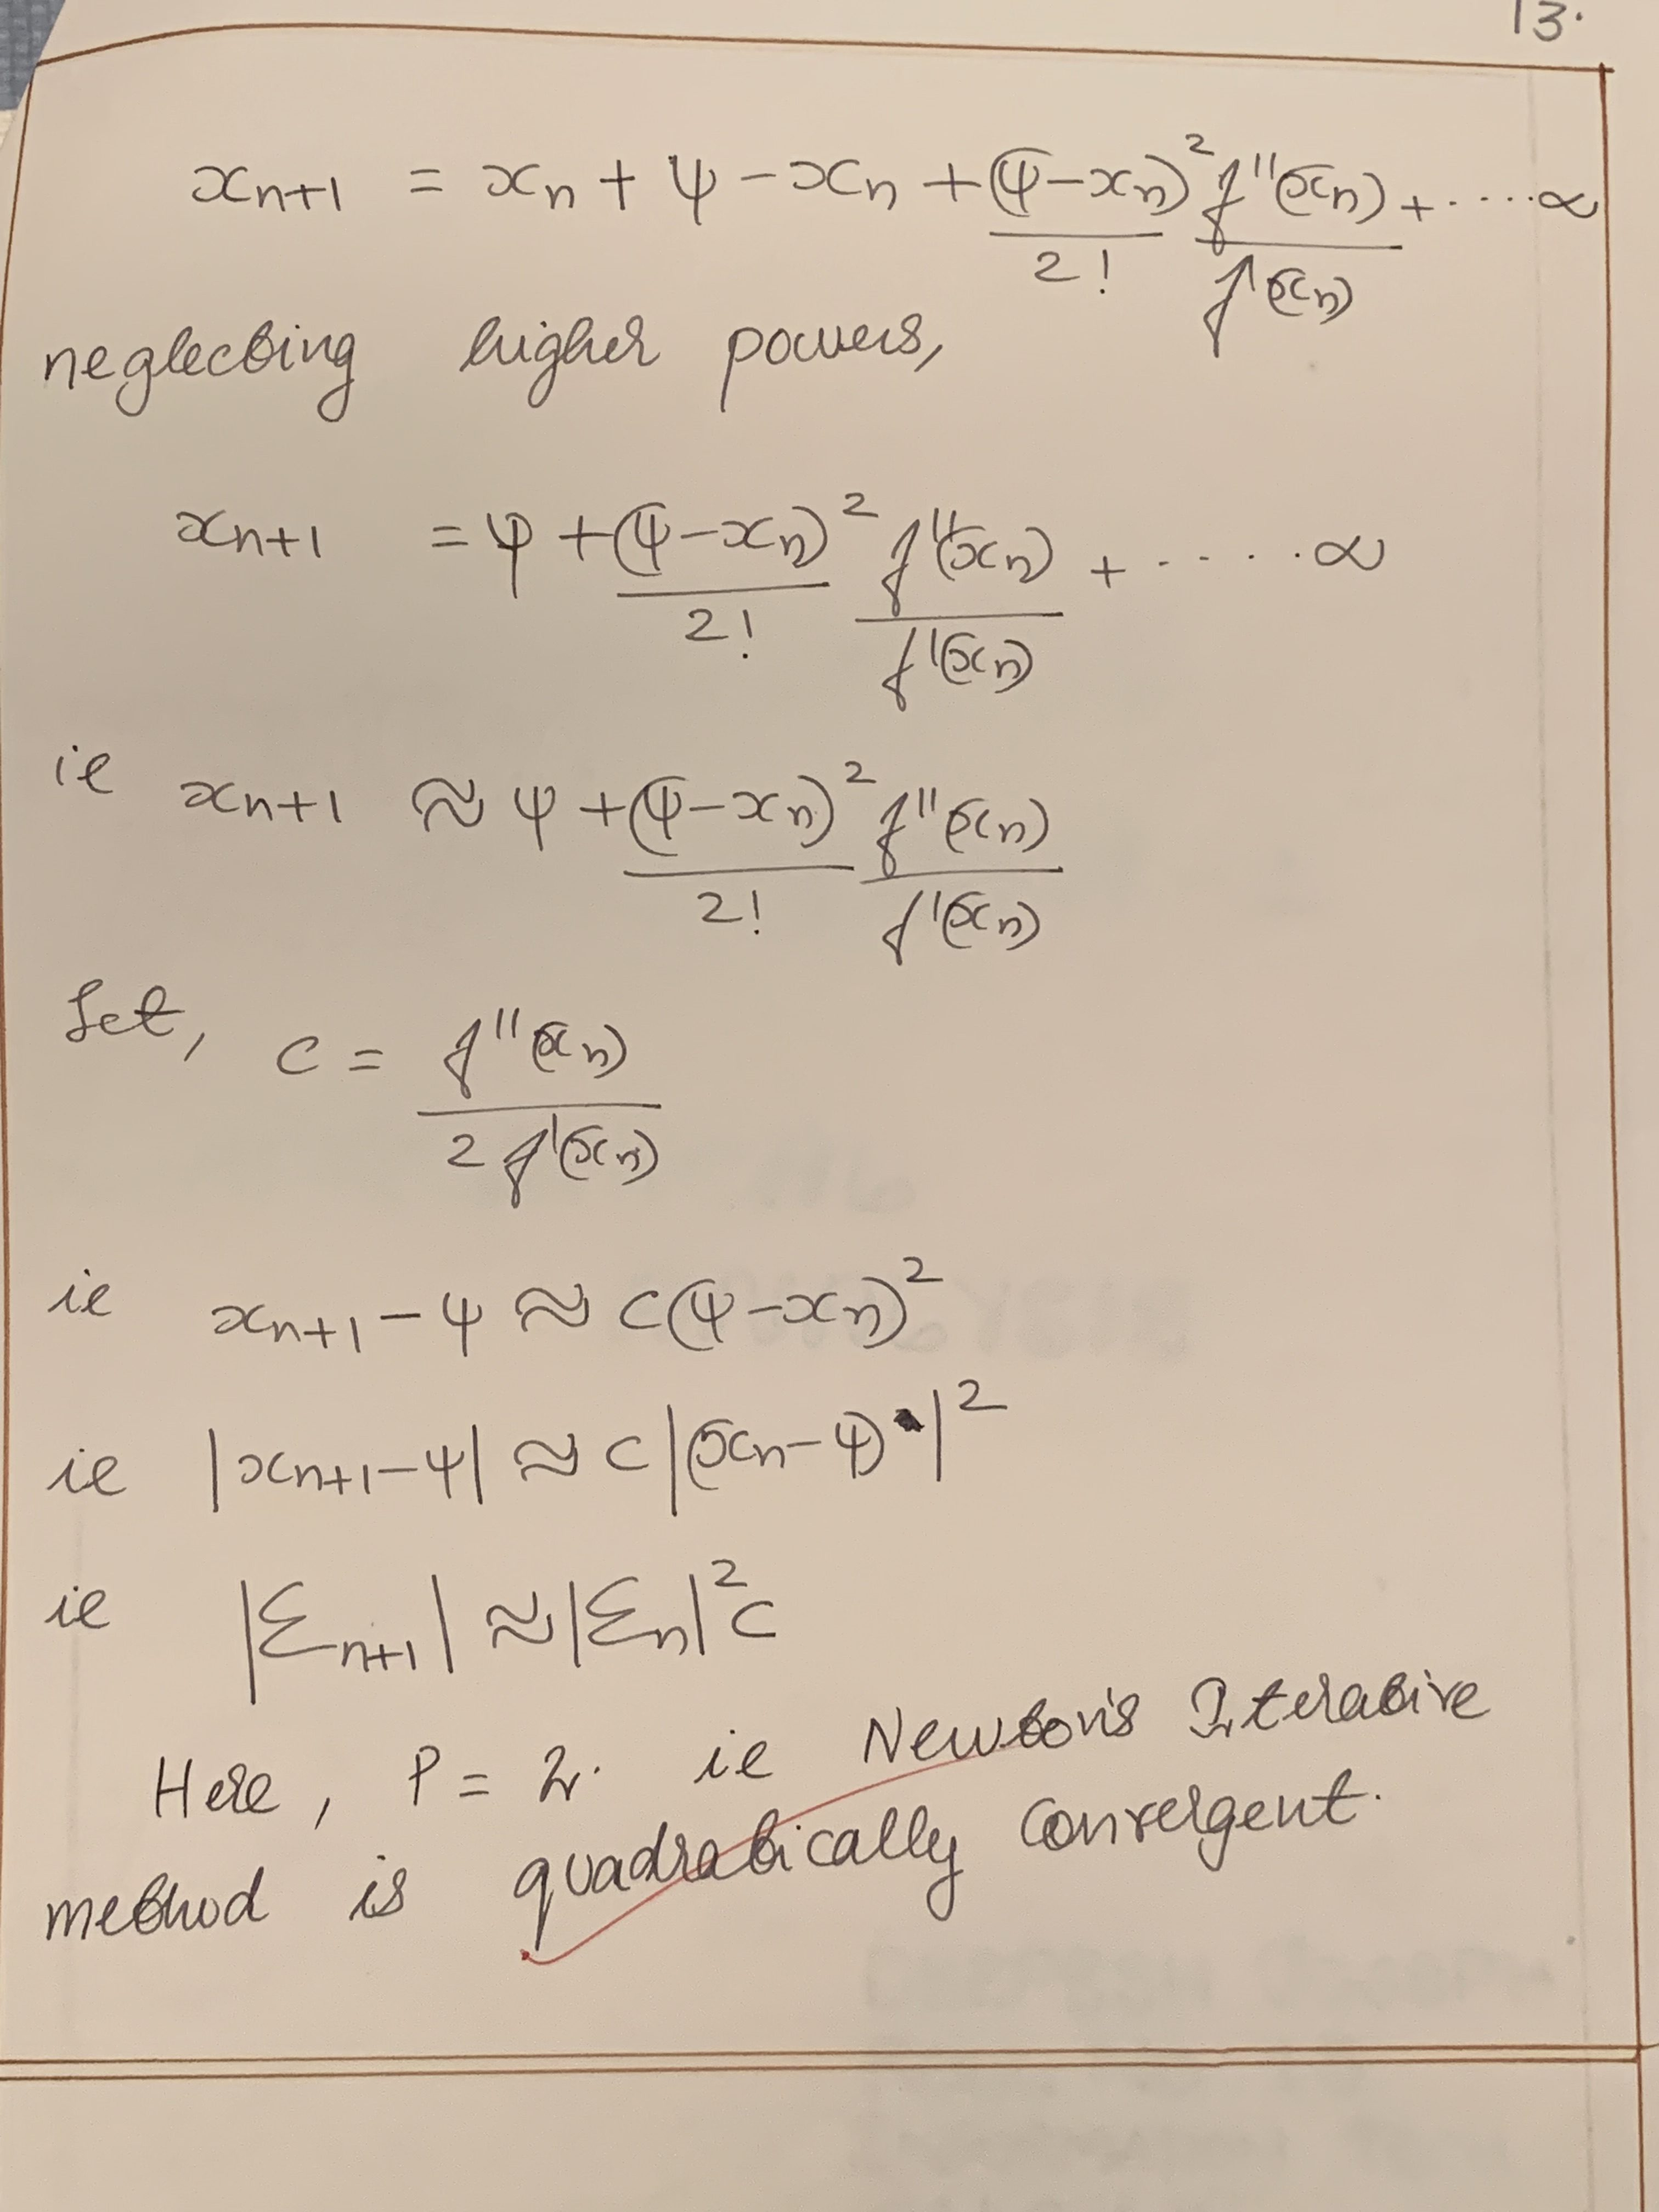 discuss-convergence-of-iterative-and-newton-raphson5